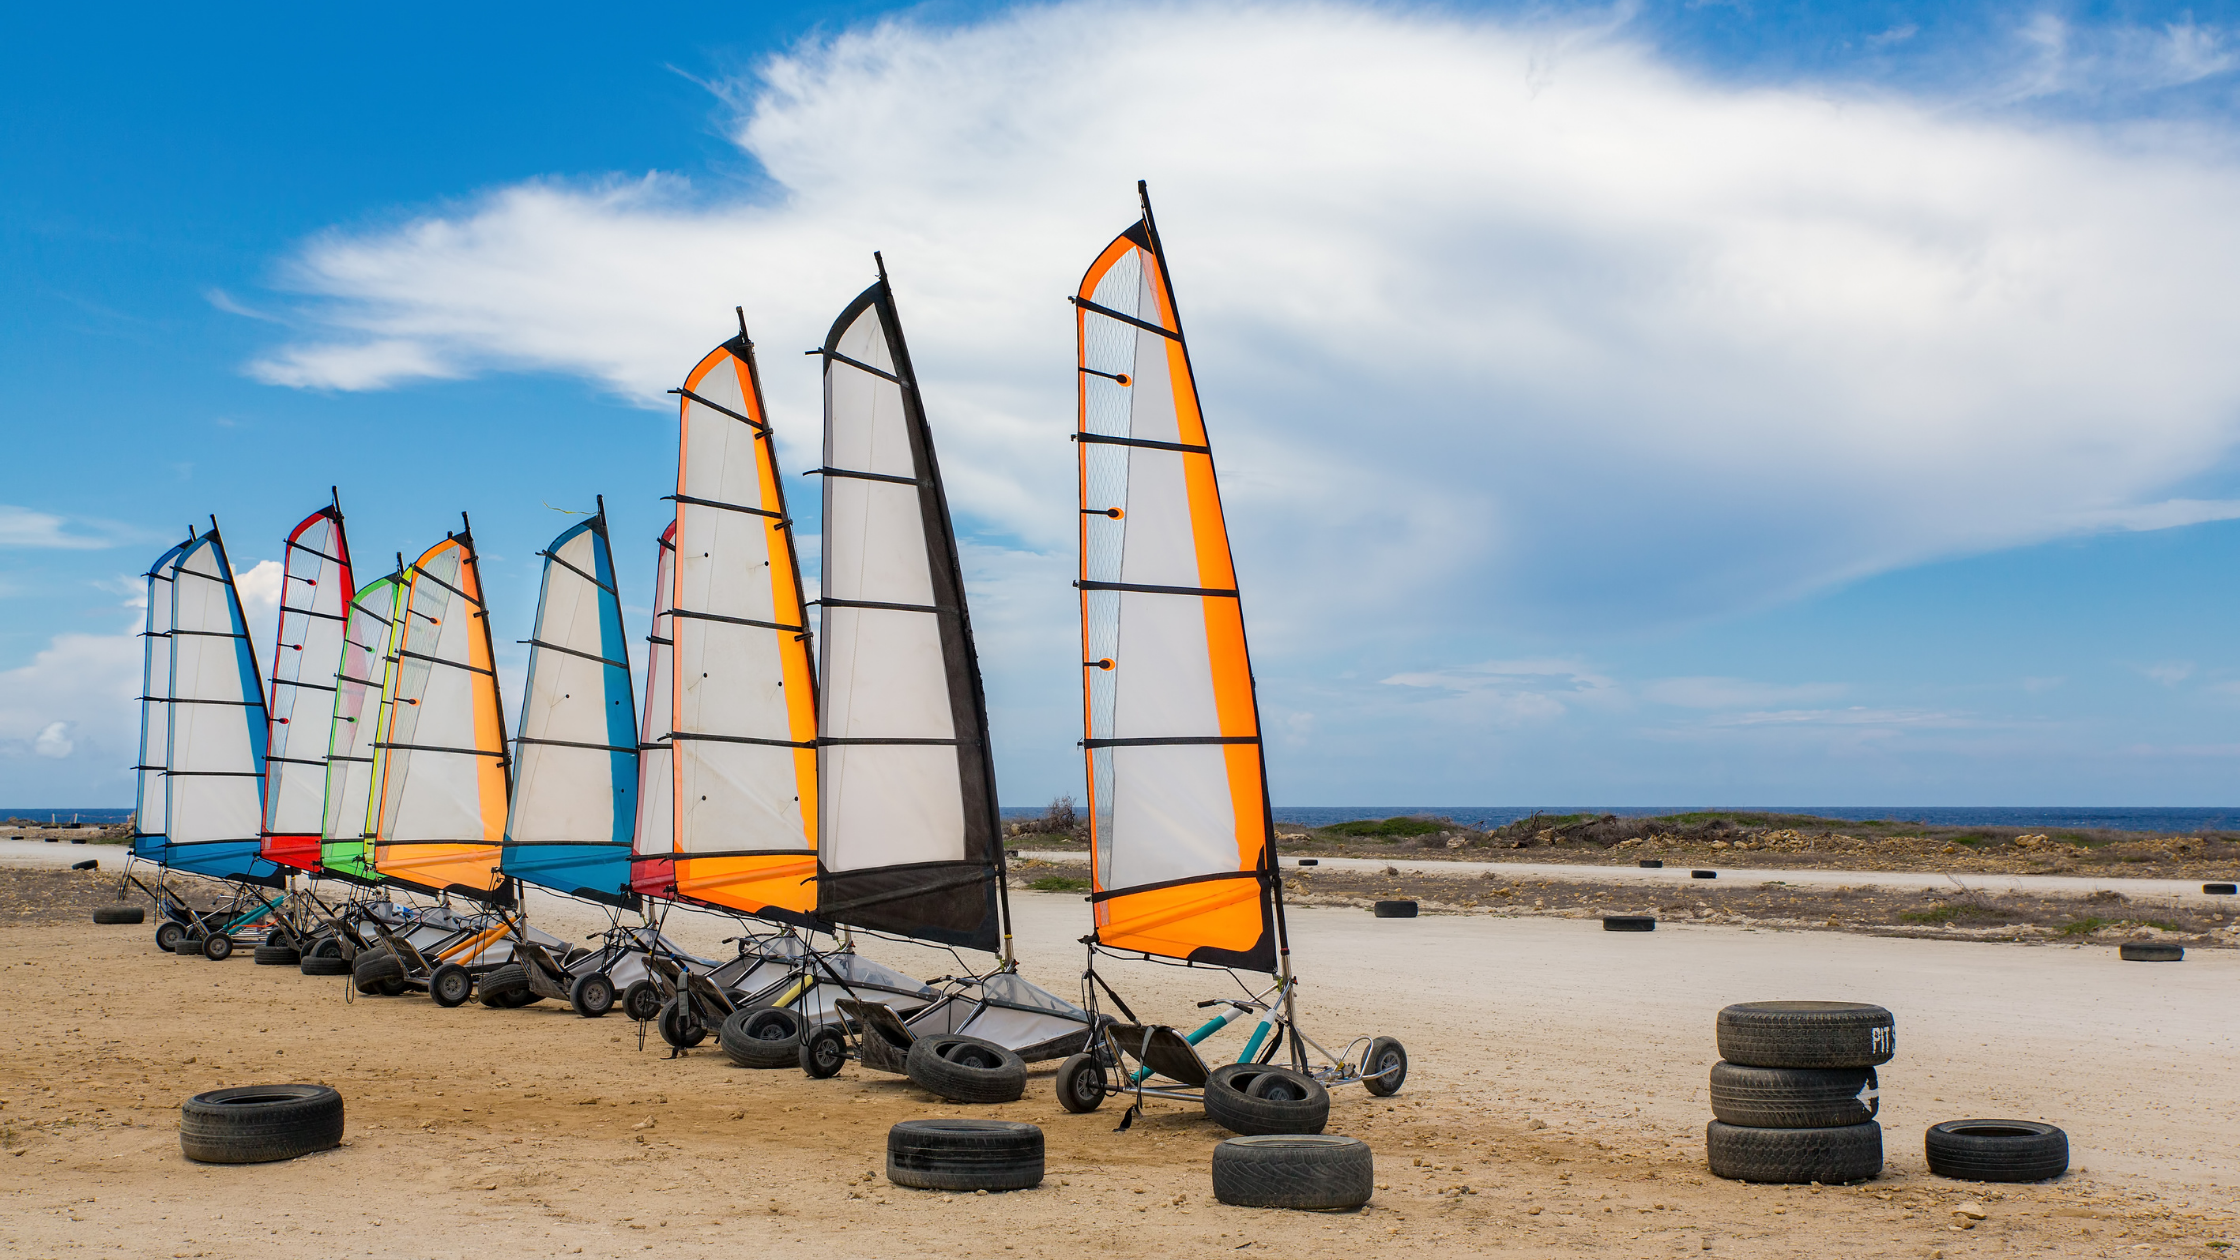 Blokarting on the beaches of Terschelling